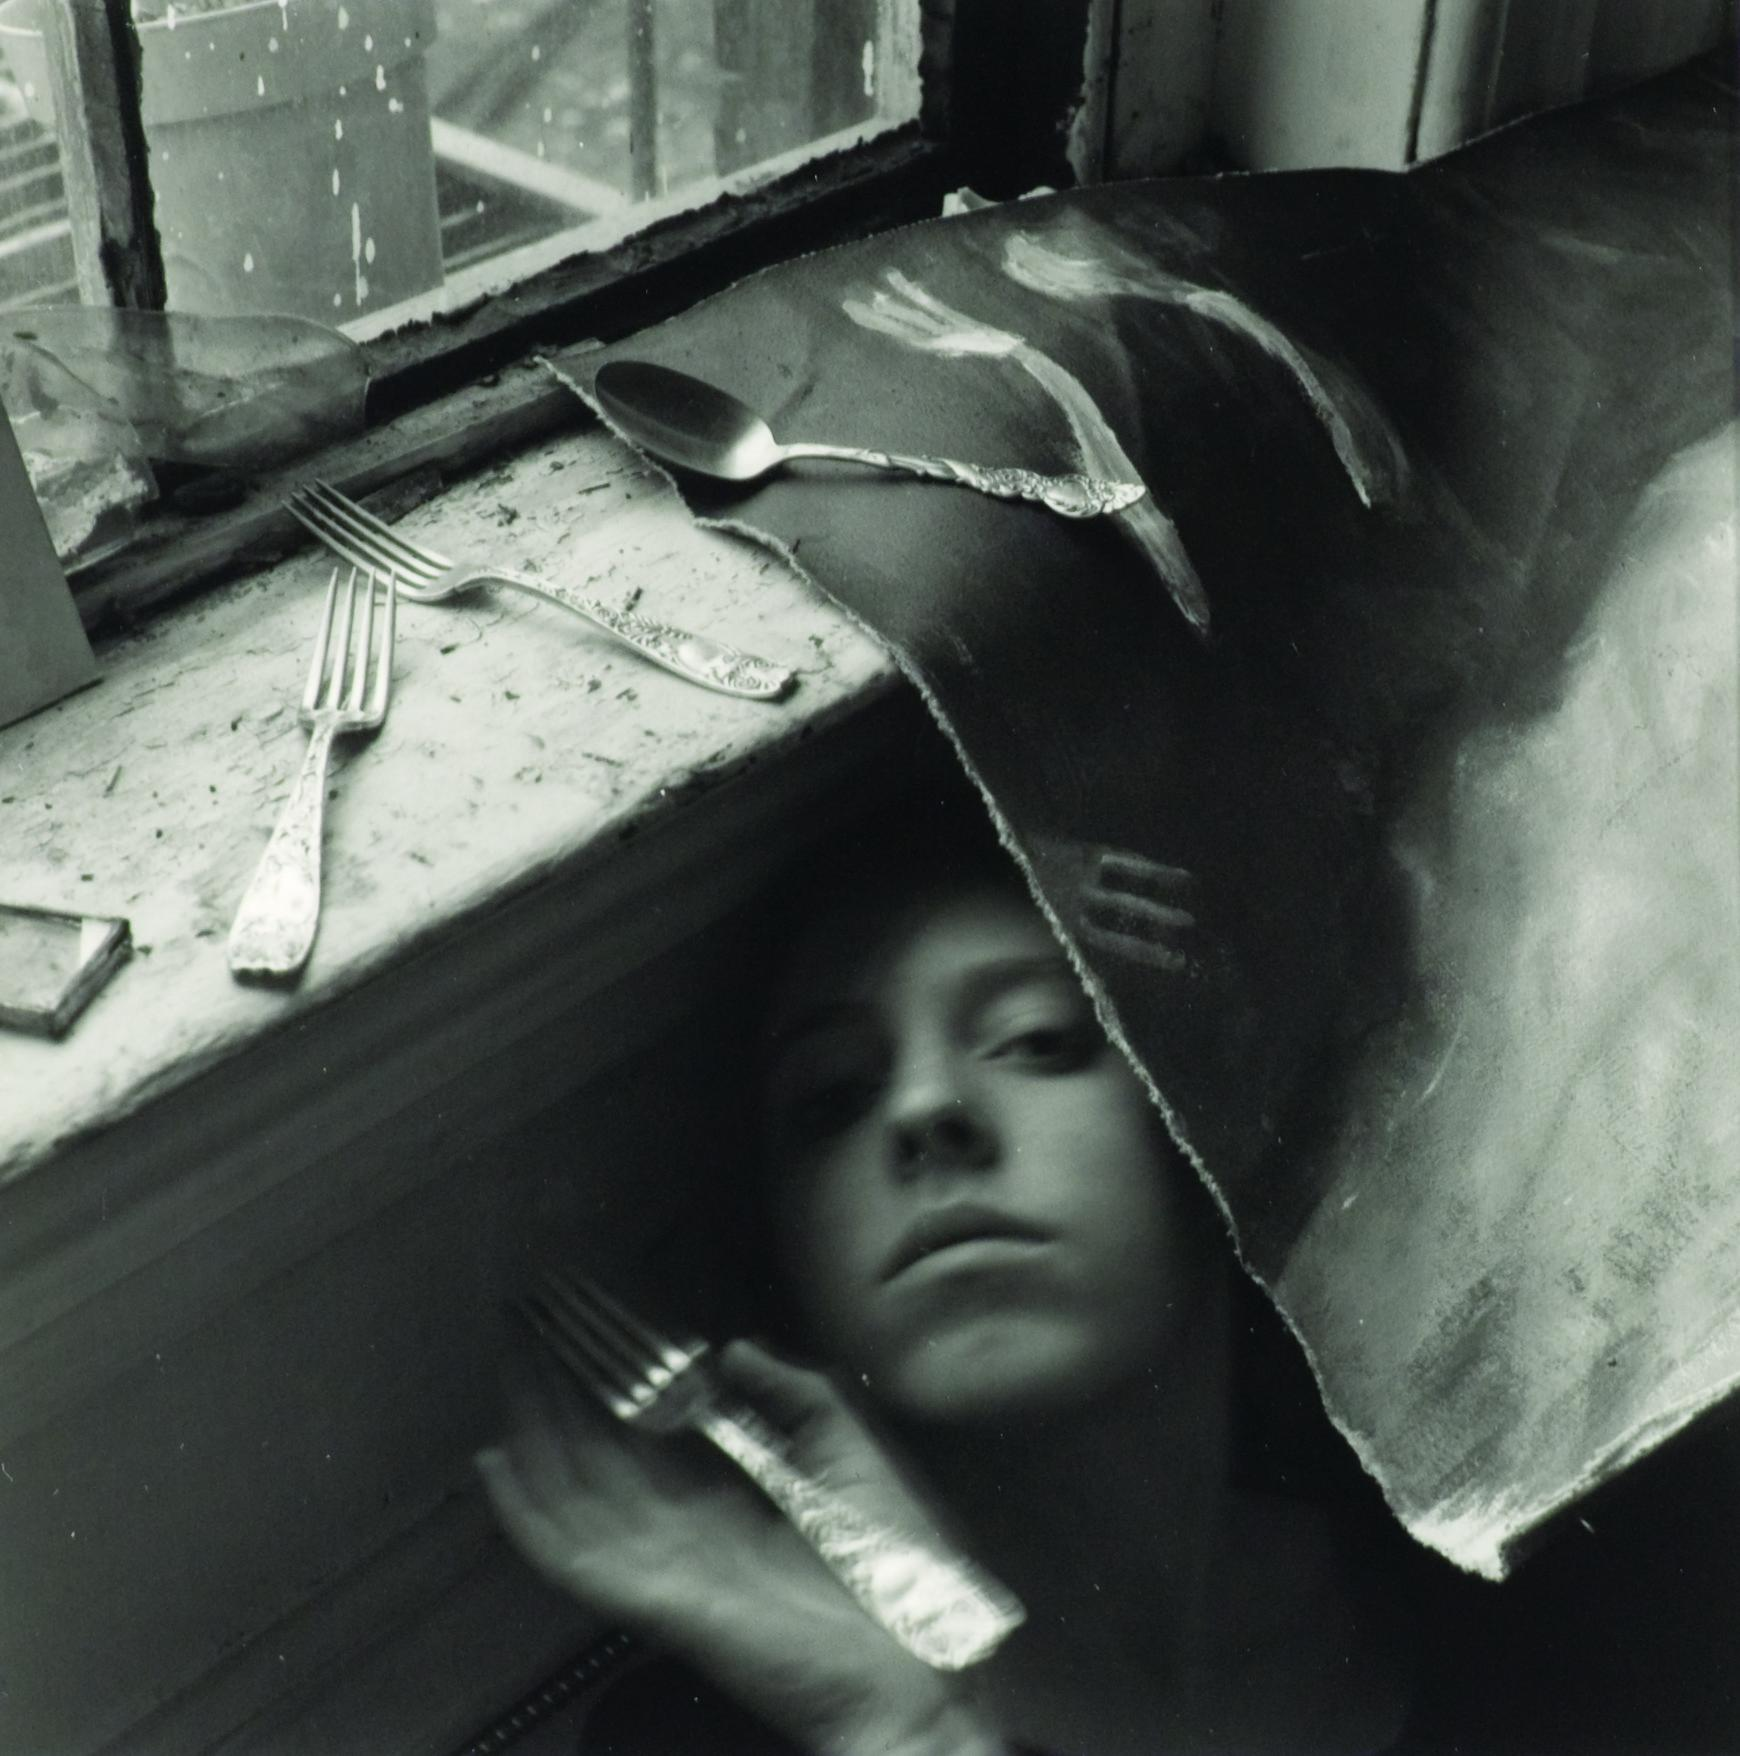 An obstructed face peers at the viewer from under a canvas sheet with forks strewn about.